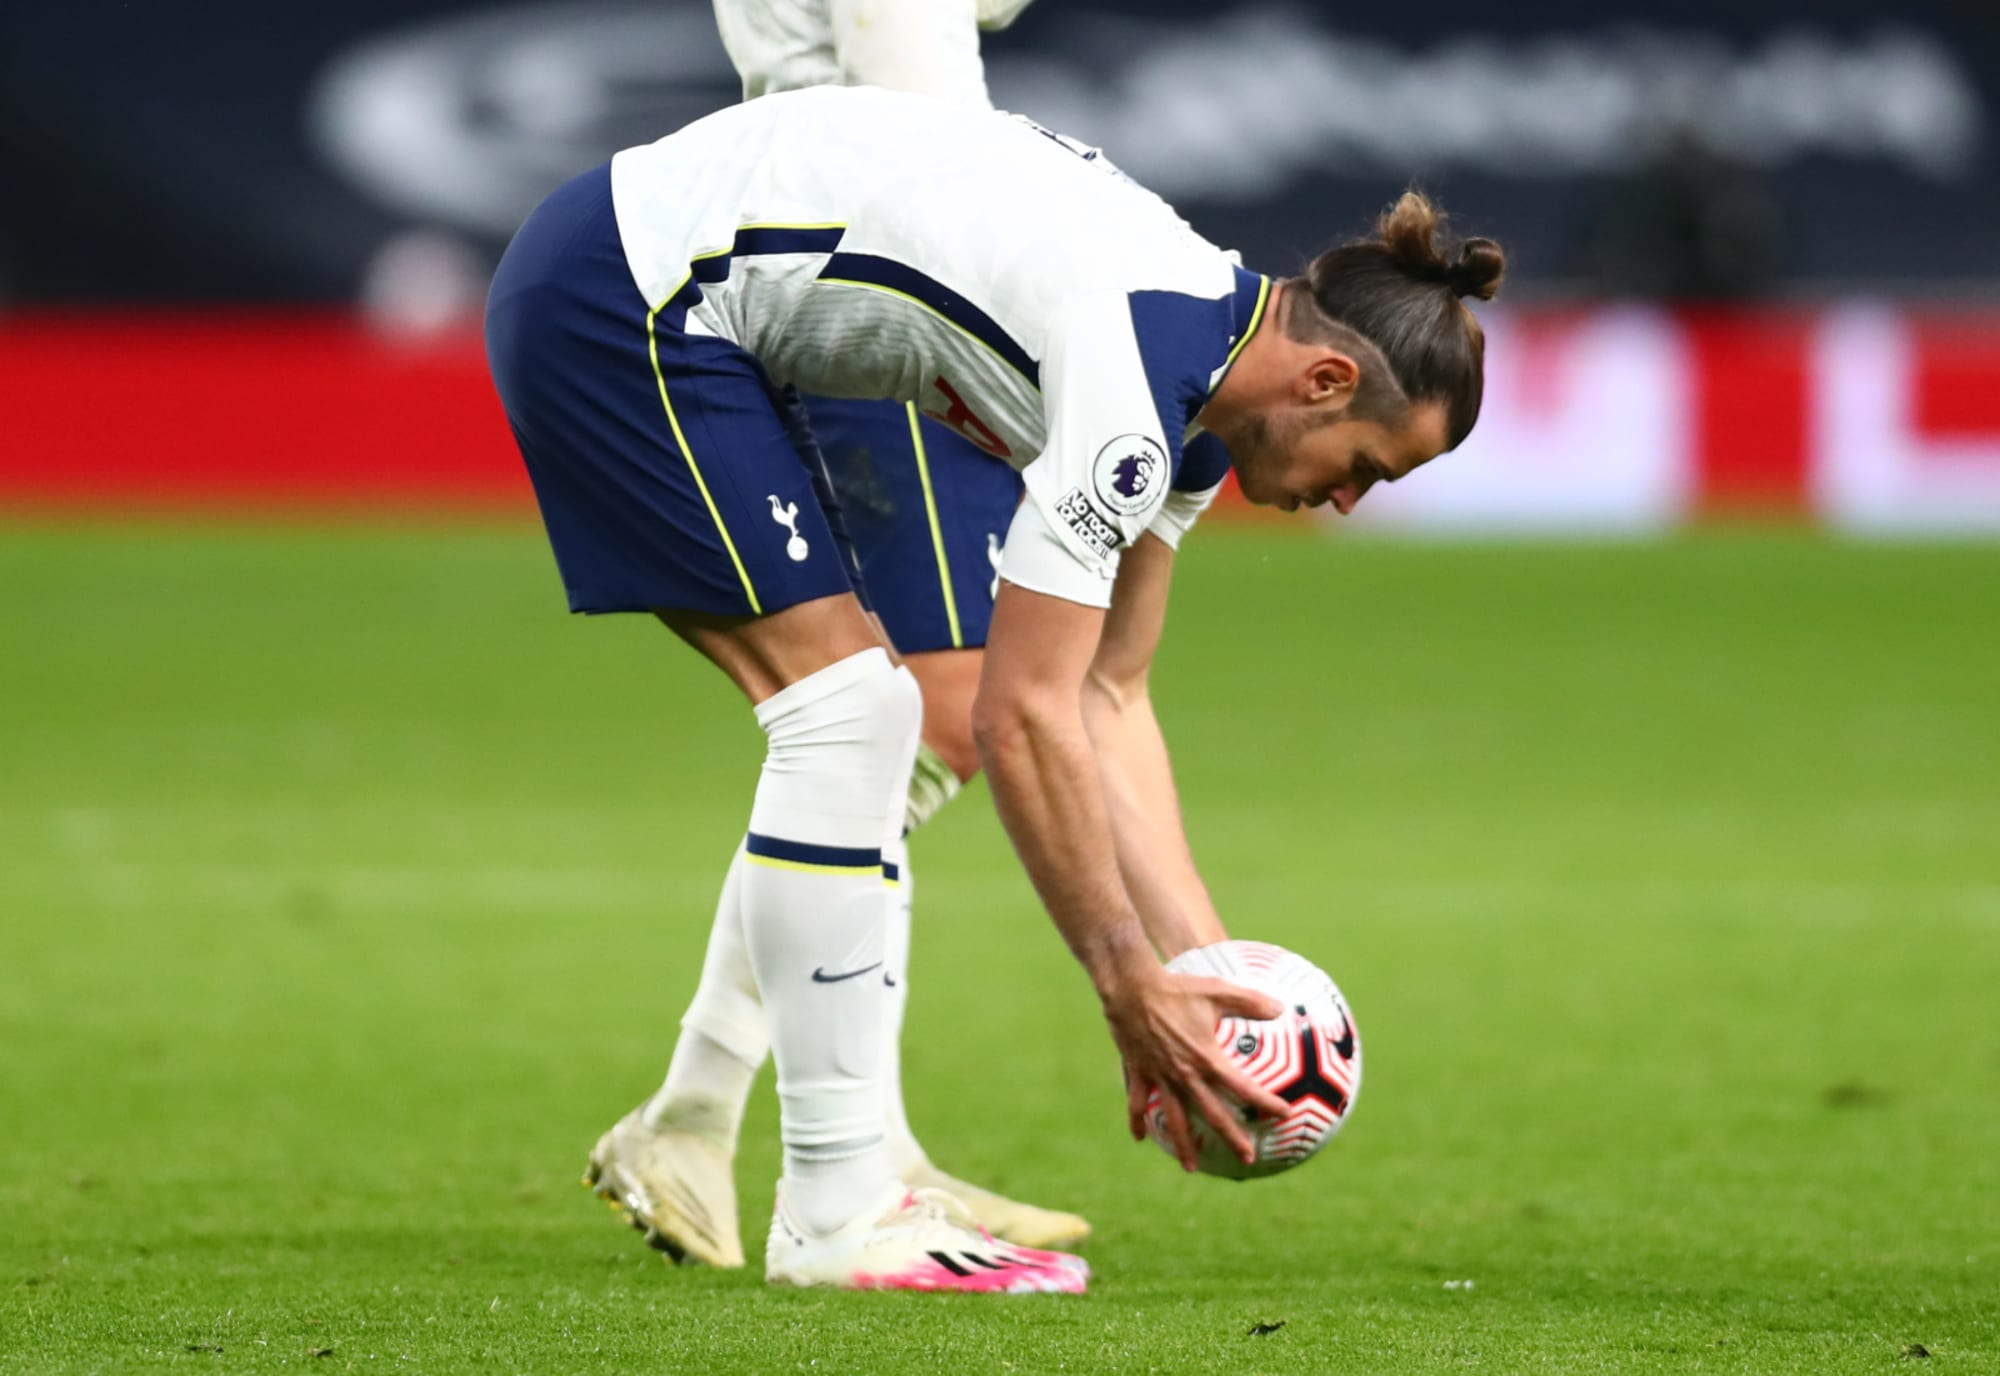 Bale's Big Day Belly Flops for Tottenham Hotspur with Miss